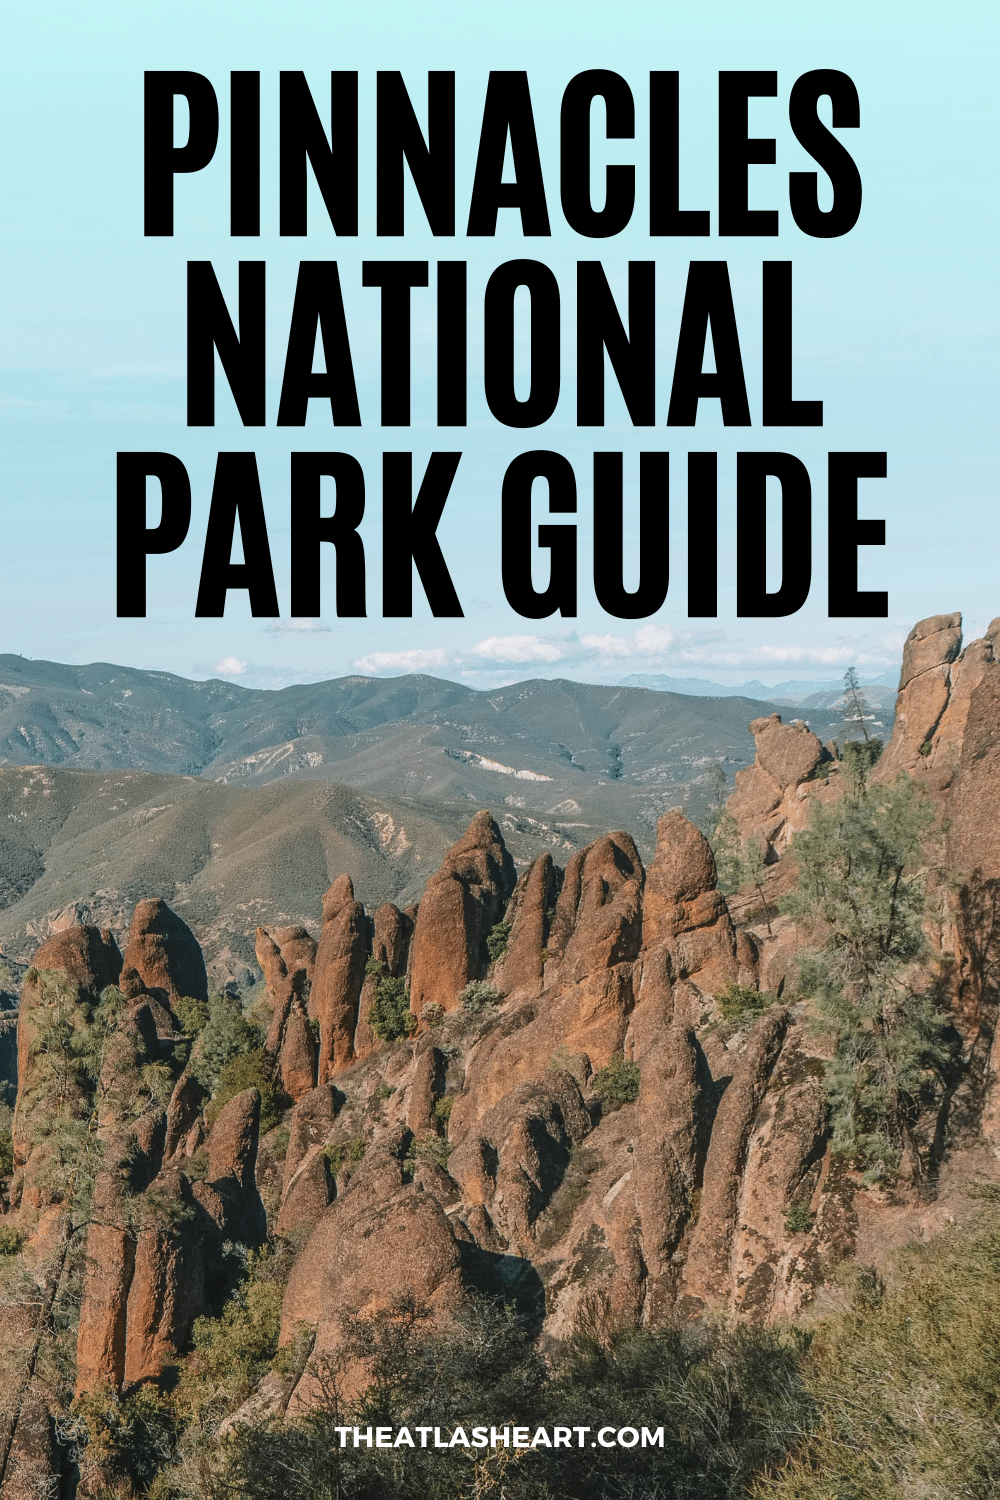 Pinnacles National Park Guide (What to Know Before You Go)